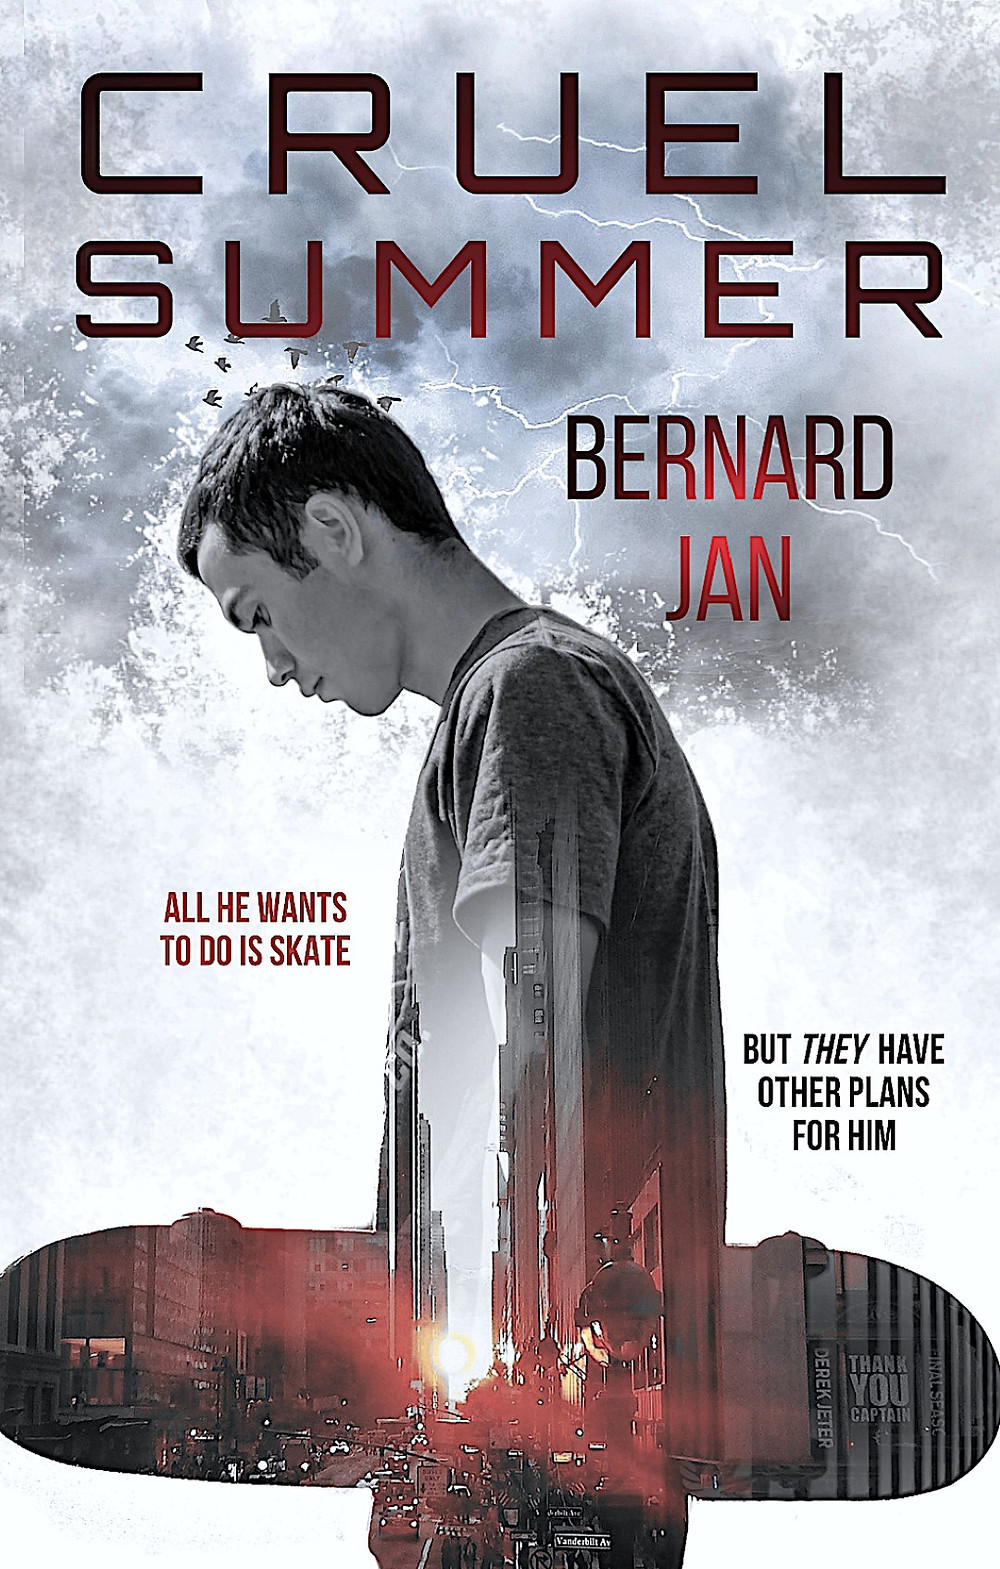 Cruel Summer by Bernard Jan eBook cover designed by Dean Cole